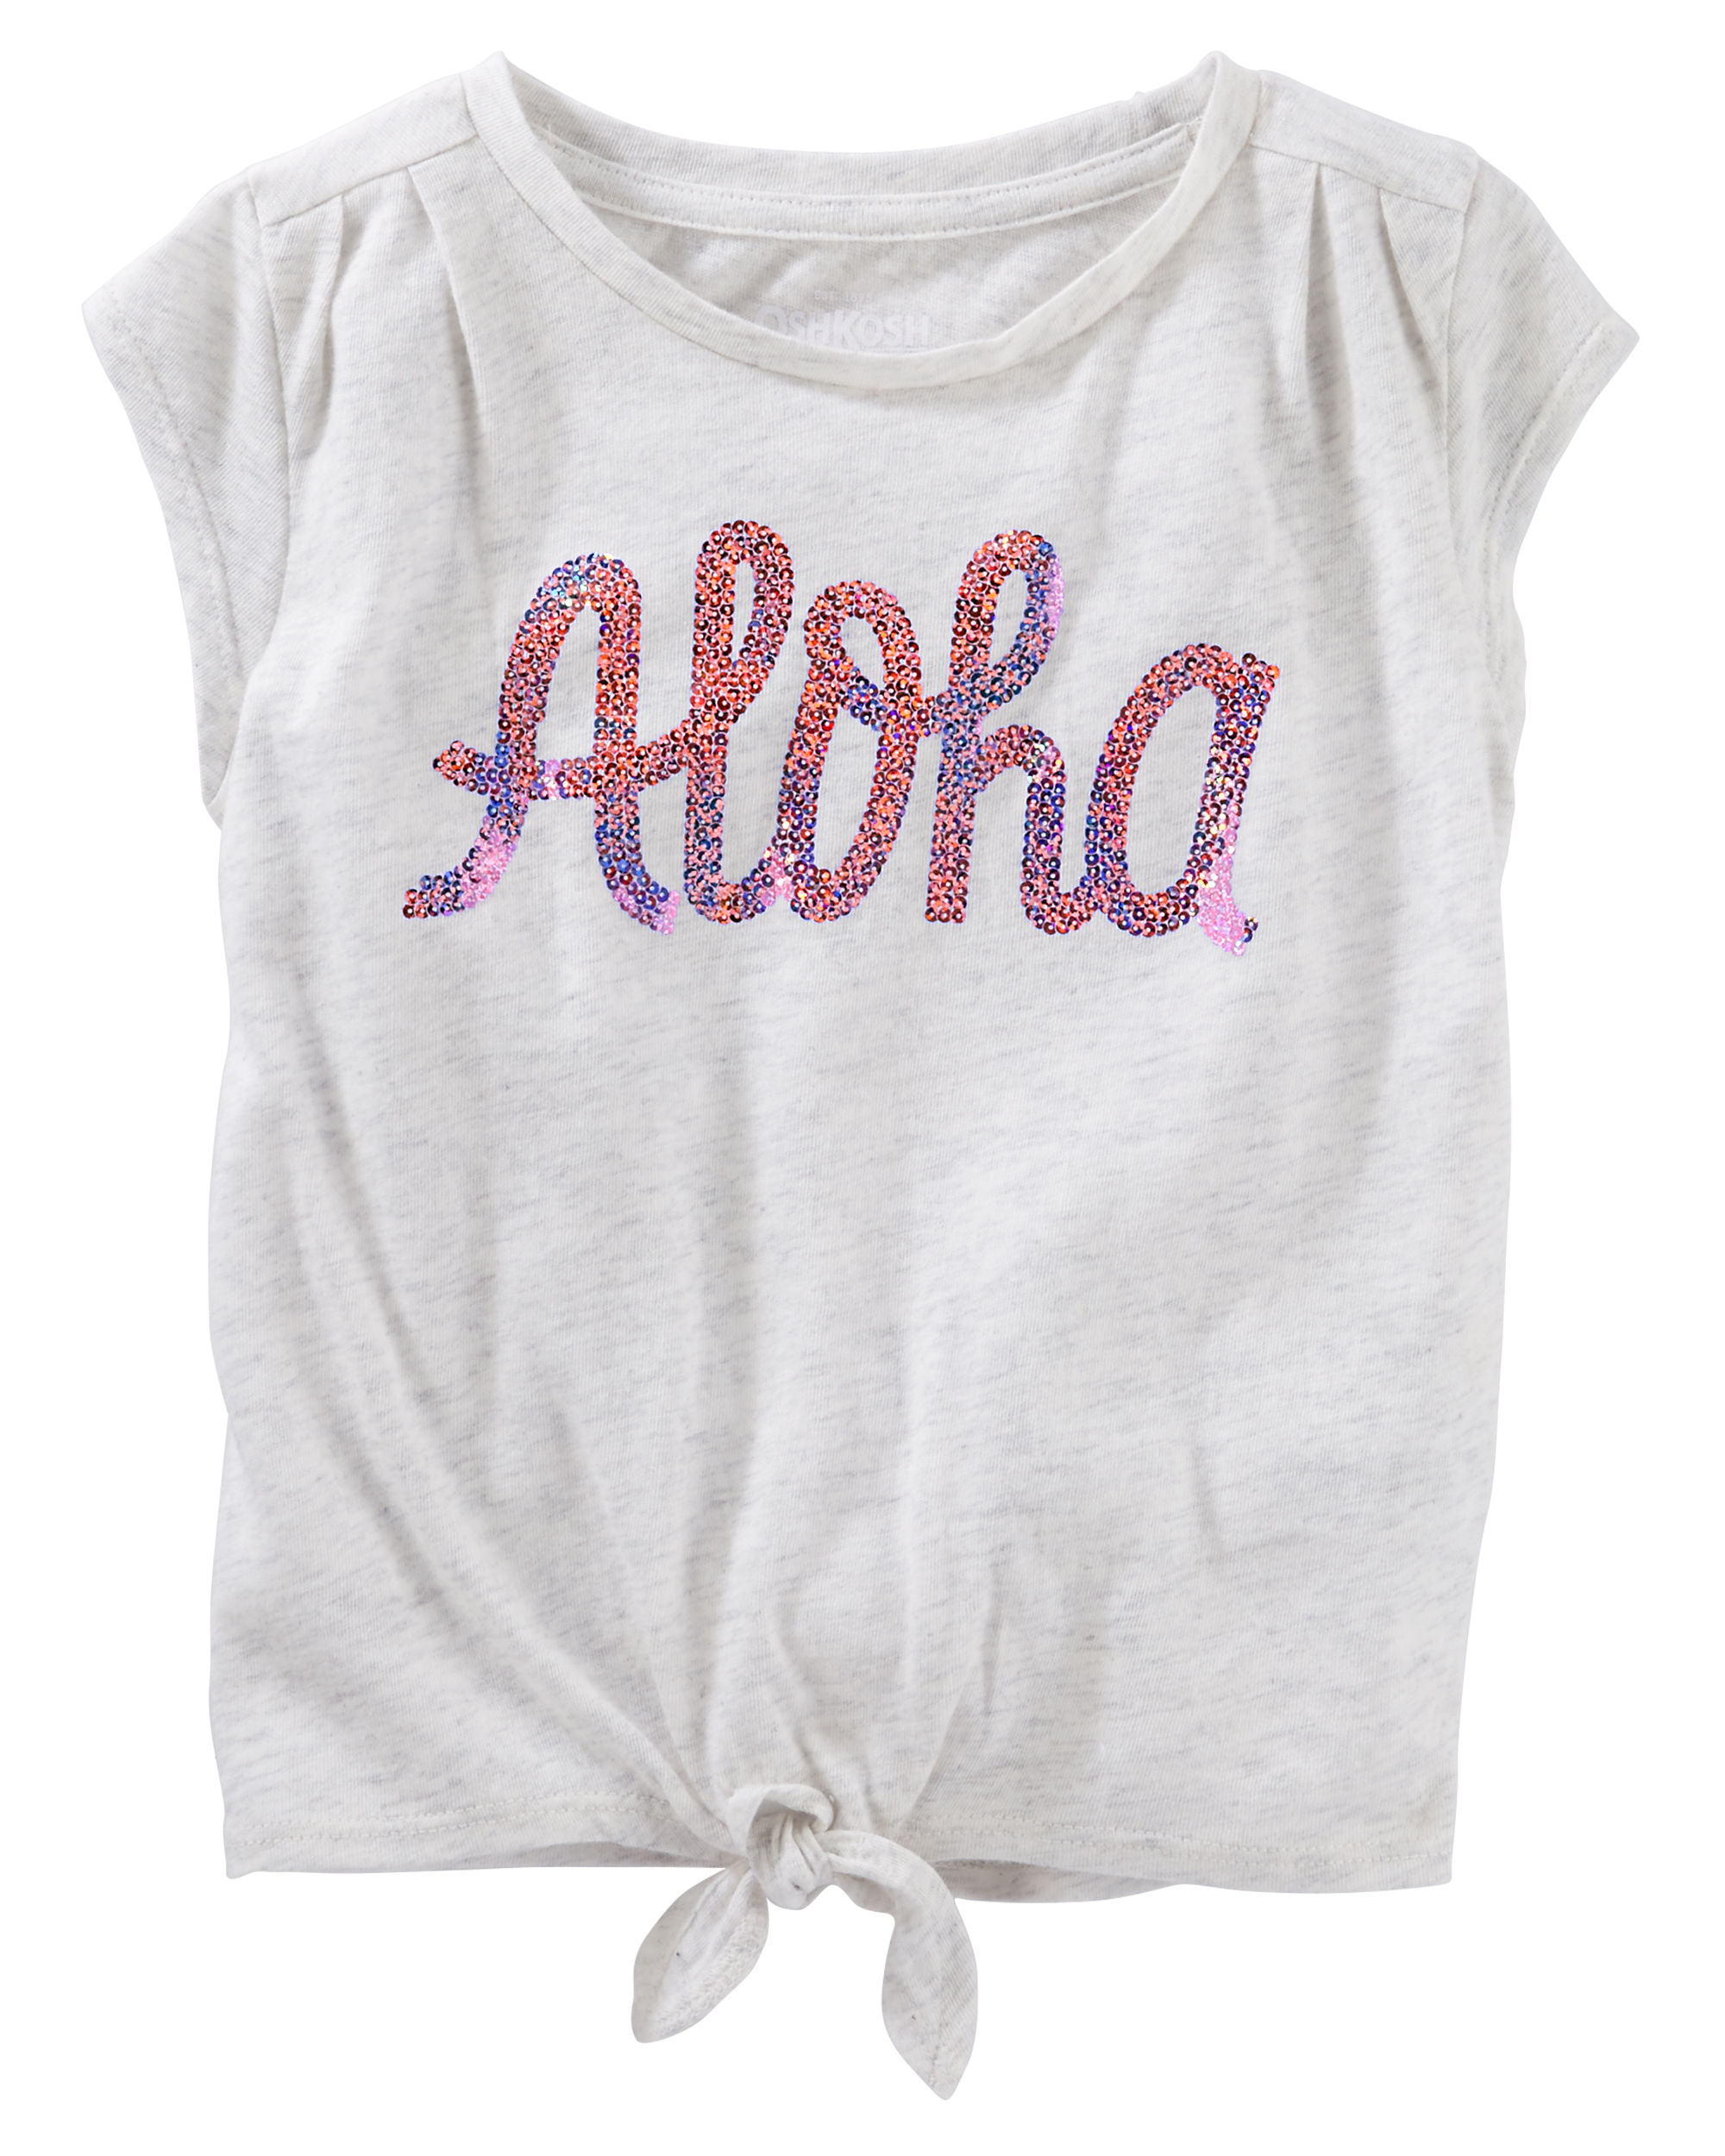 OshKosh B'gosh Little Girls' TIe Hem Top, Aloha, 2T